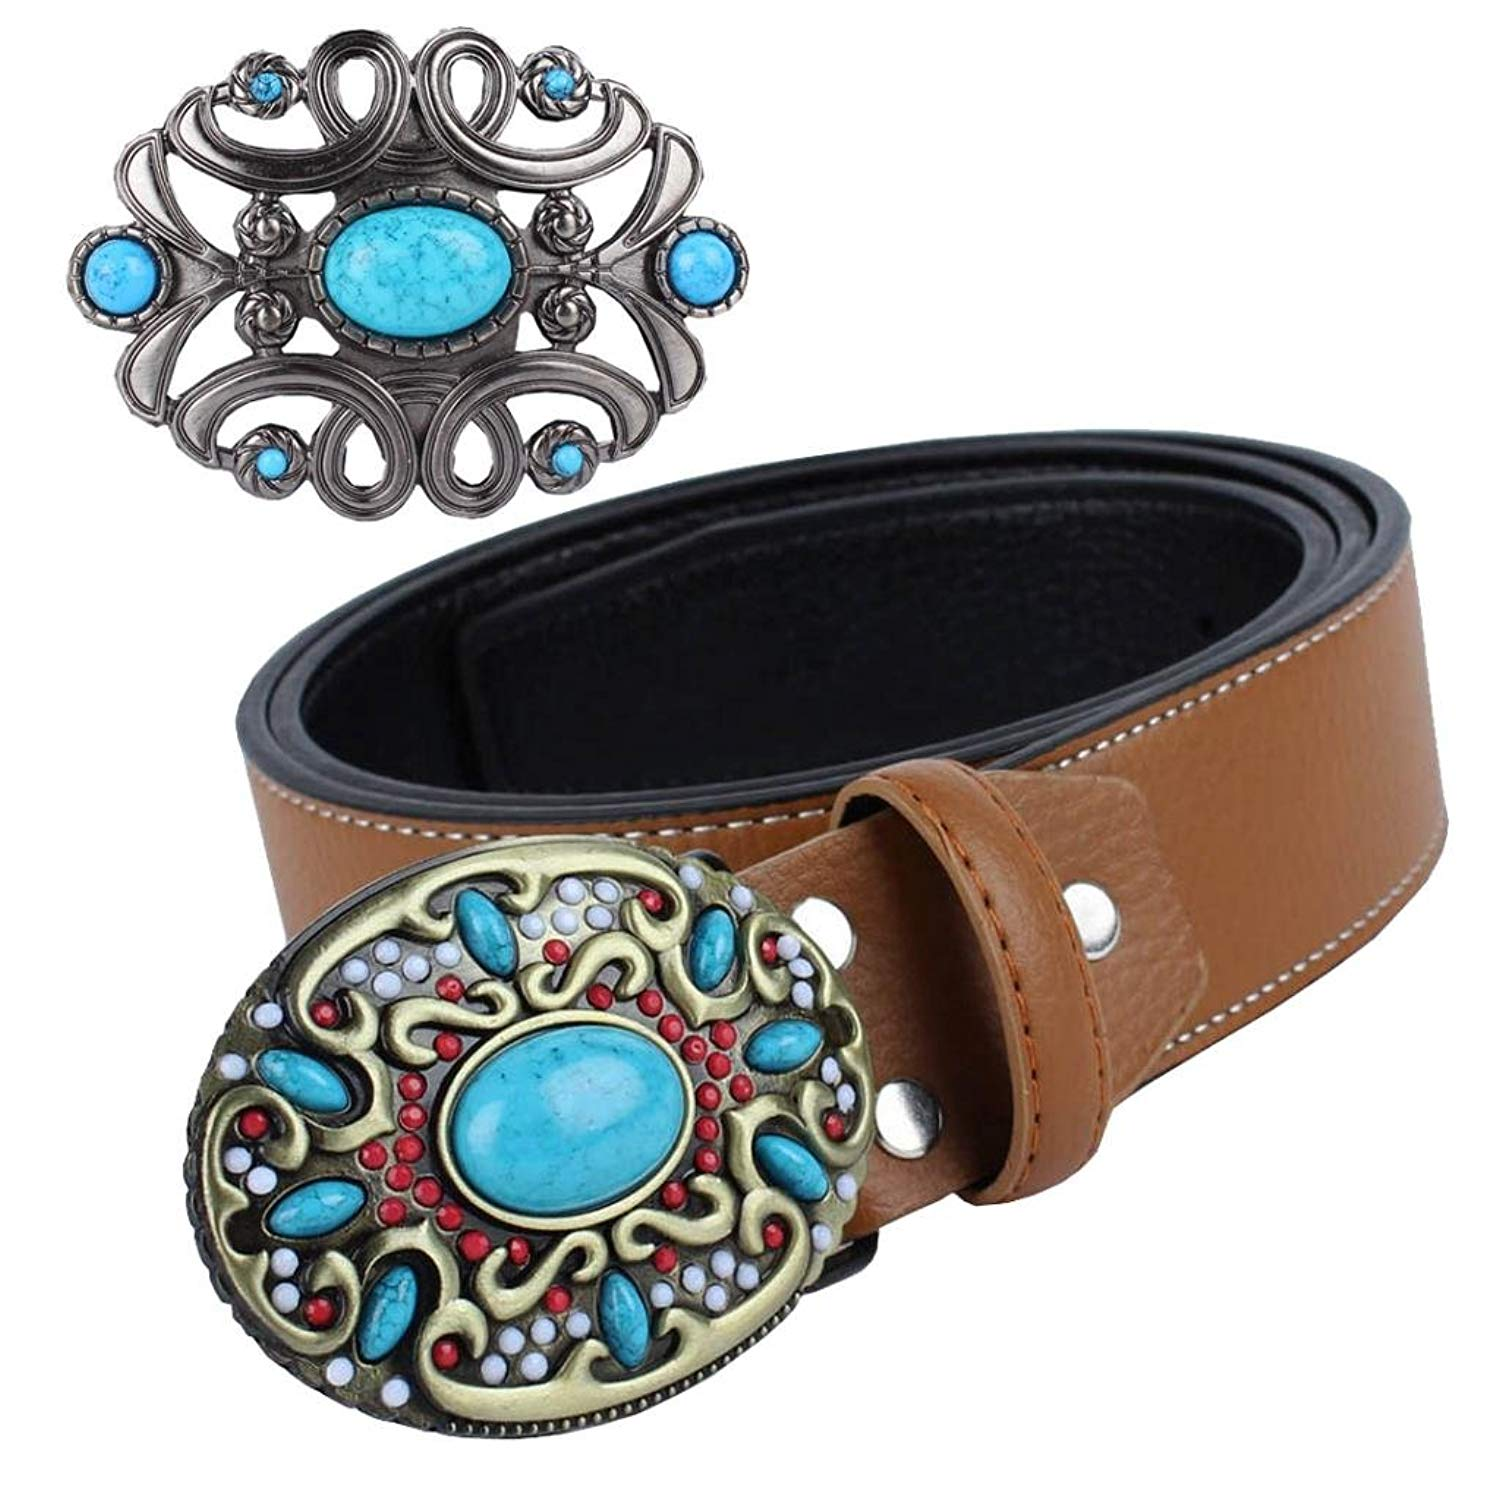 Fashion Mens Good Plating Metal Gold Color Belt Buckle Men Woman Floral Hebillas With 4cm Belts Oval Luxury Jeans Accessories Back To Search Resultshome & Garden Arts,crafts & Sewing